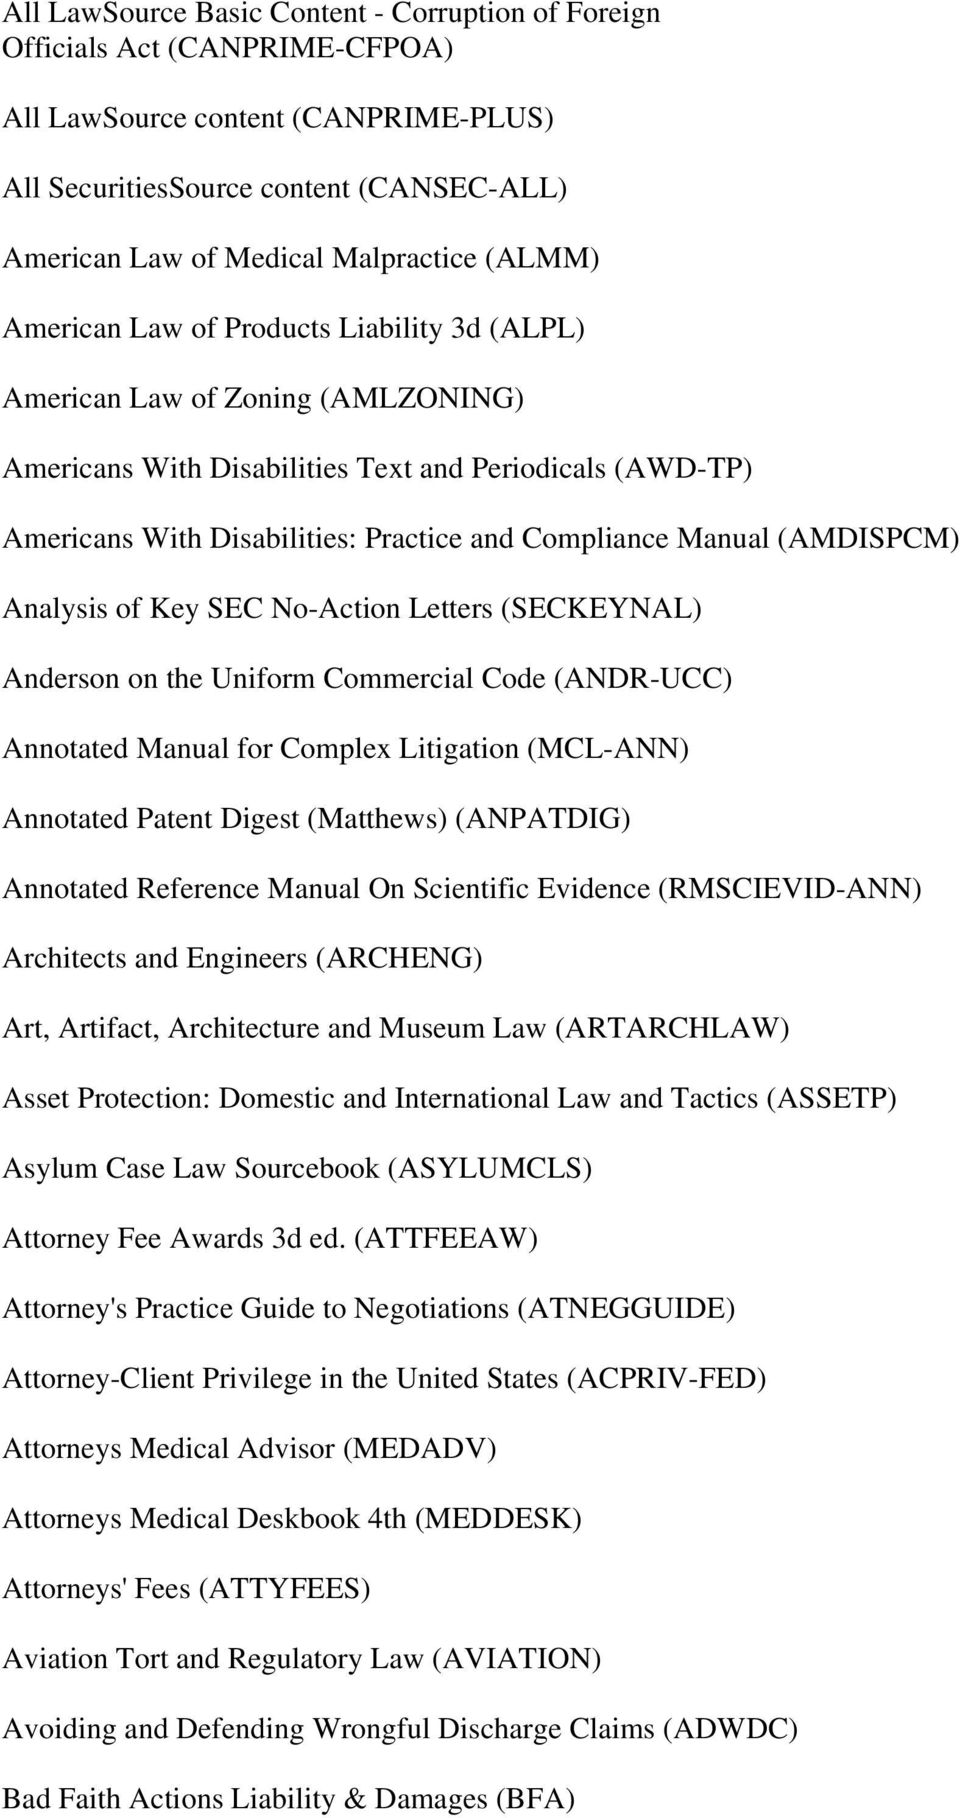 Manual (AMDISPCM) Analysis of Key SEC No-Action Letters (SECKEYNAL) Anderson on the Uniform Commercial Code (ANDR-UCC) Annotated Manual for Complex Litigation (MCL-ANN) Annotated Patent Digest